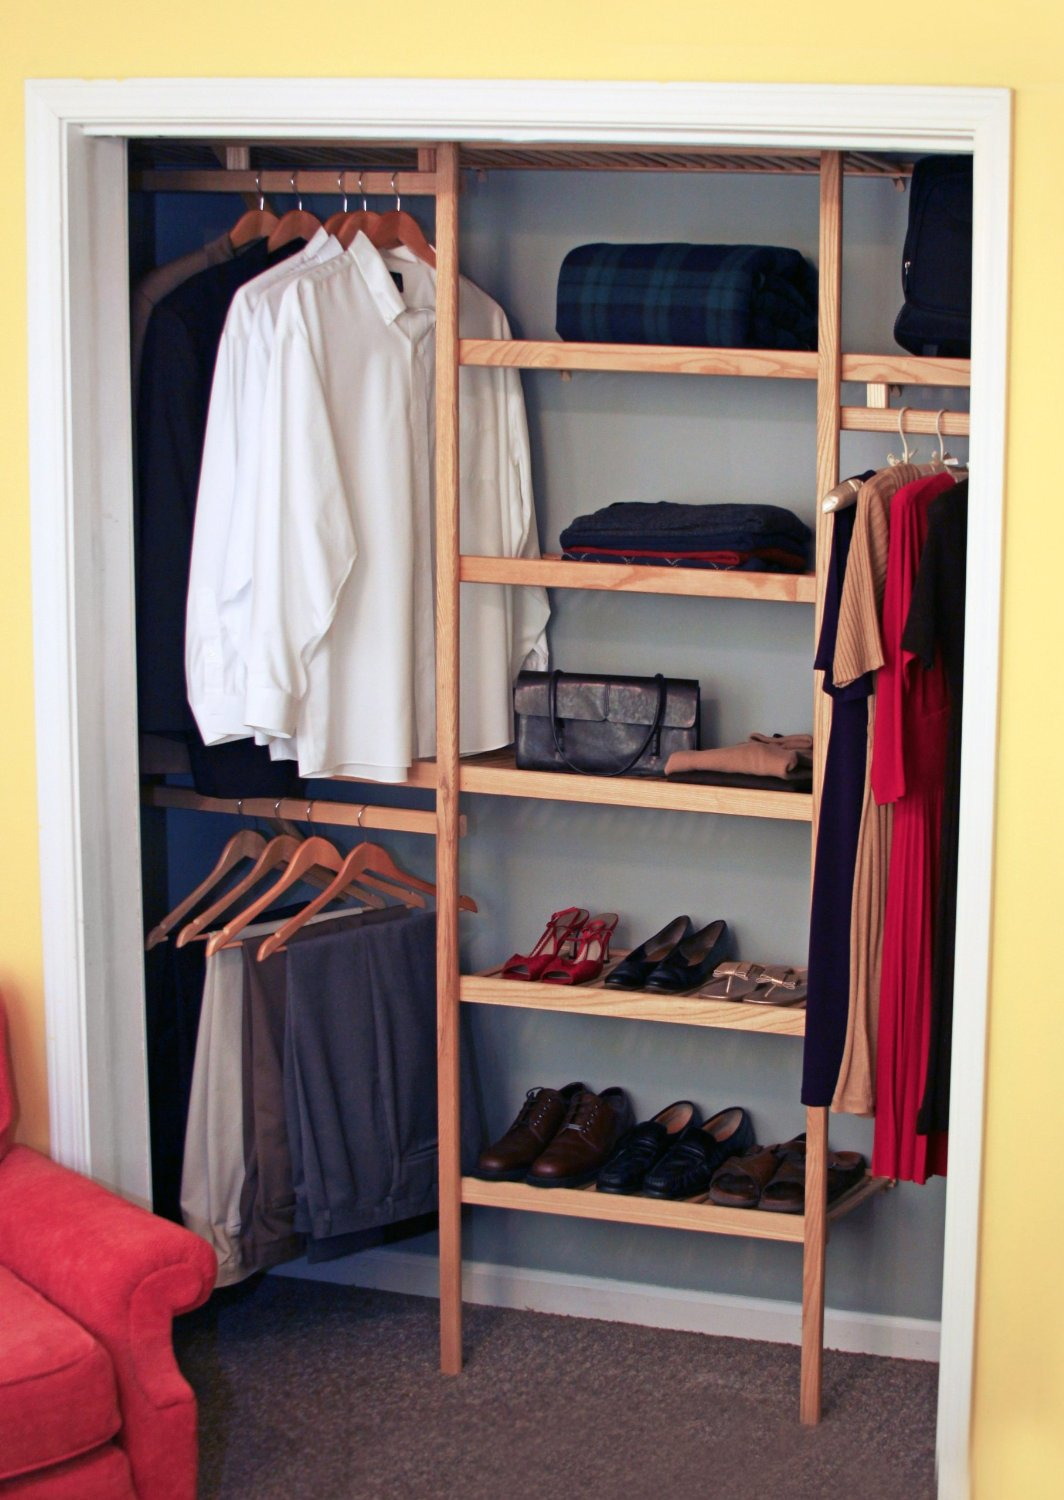 Get Quotations · All Hardwood Closet Shelving Kit (Natural)